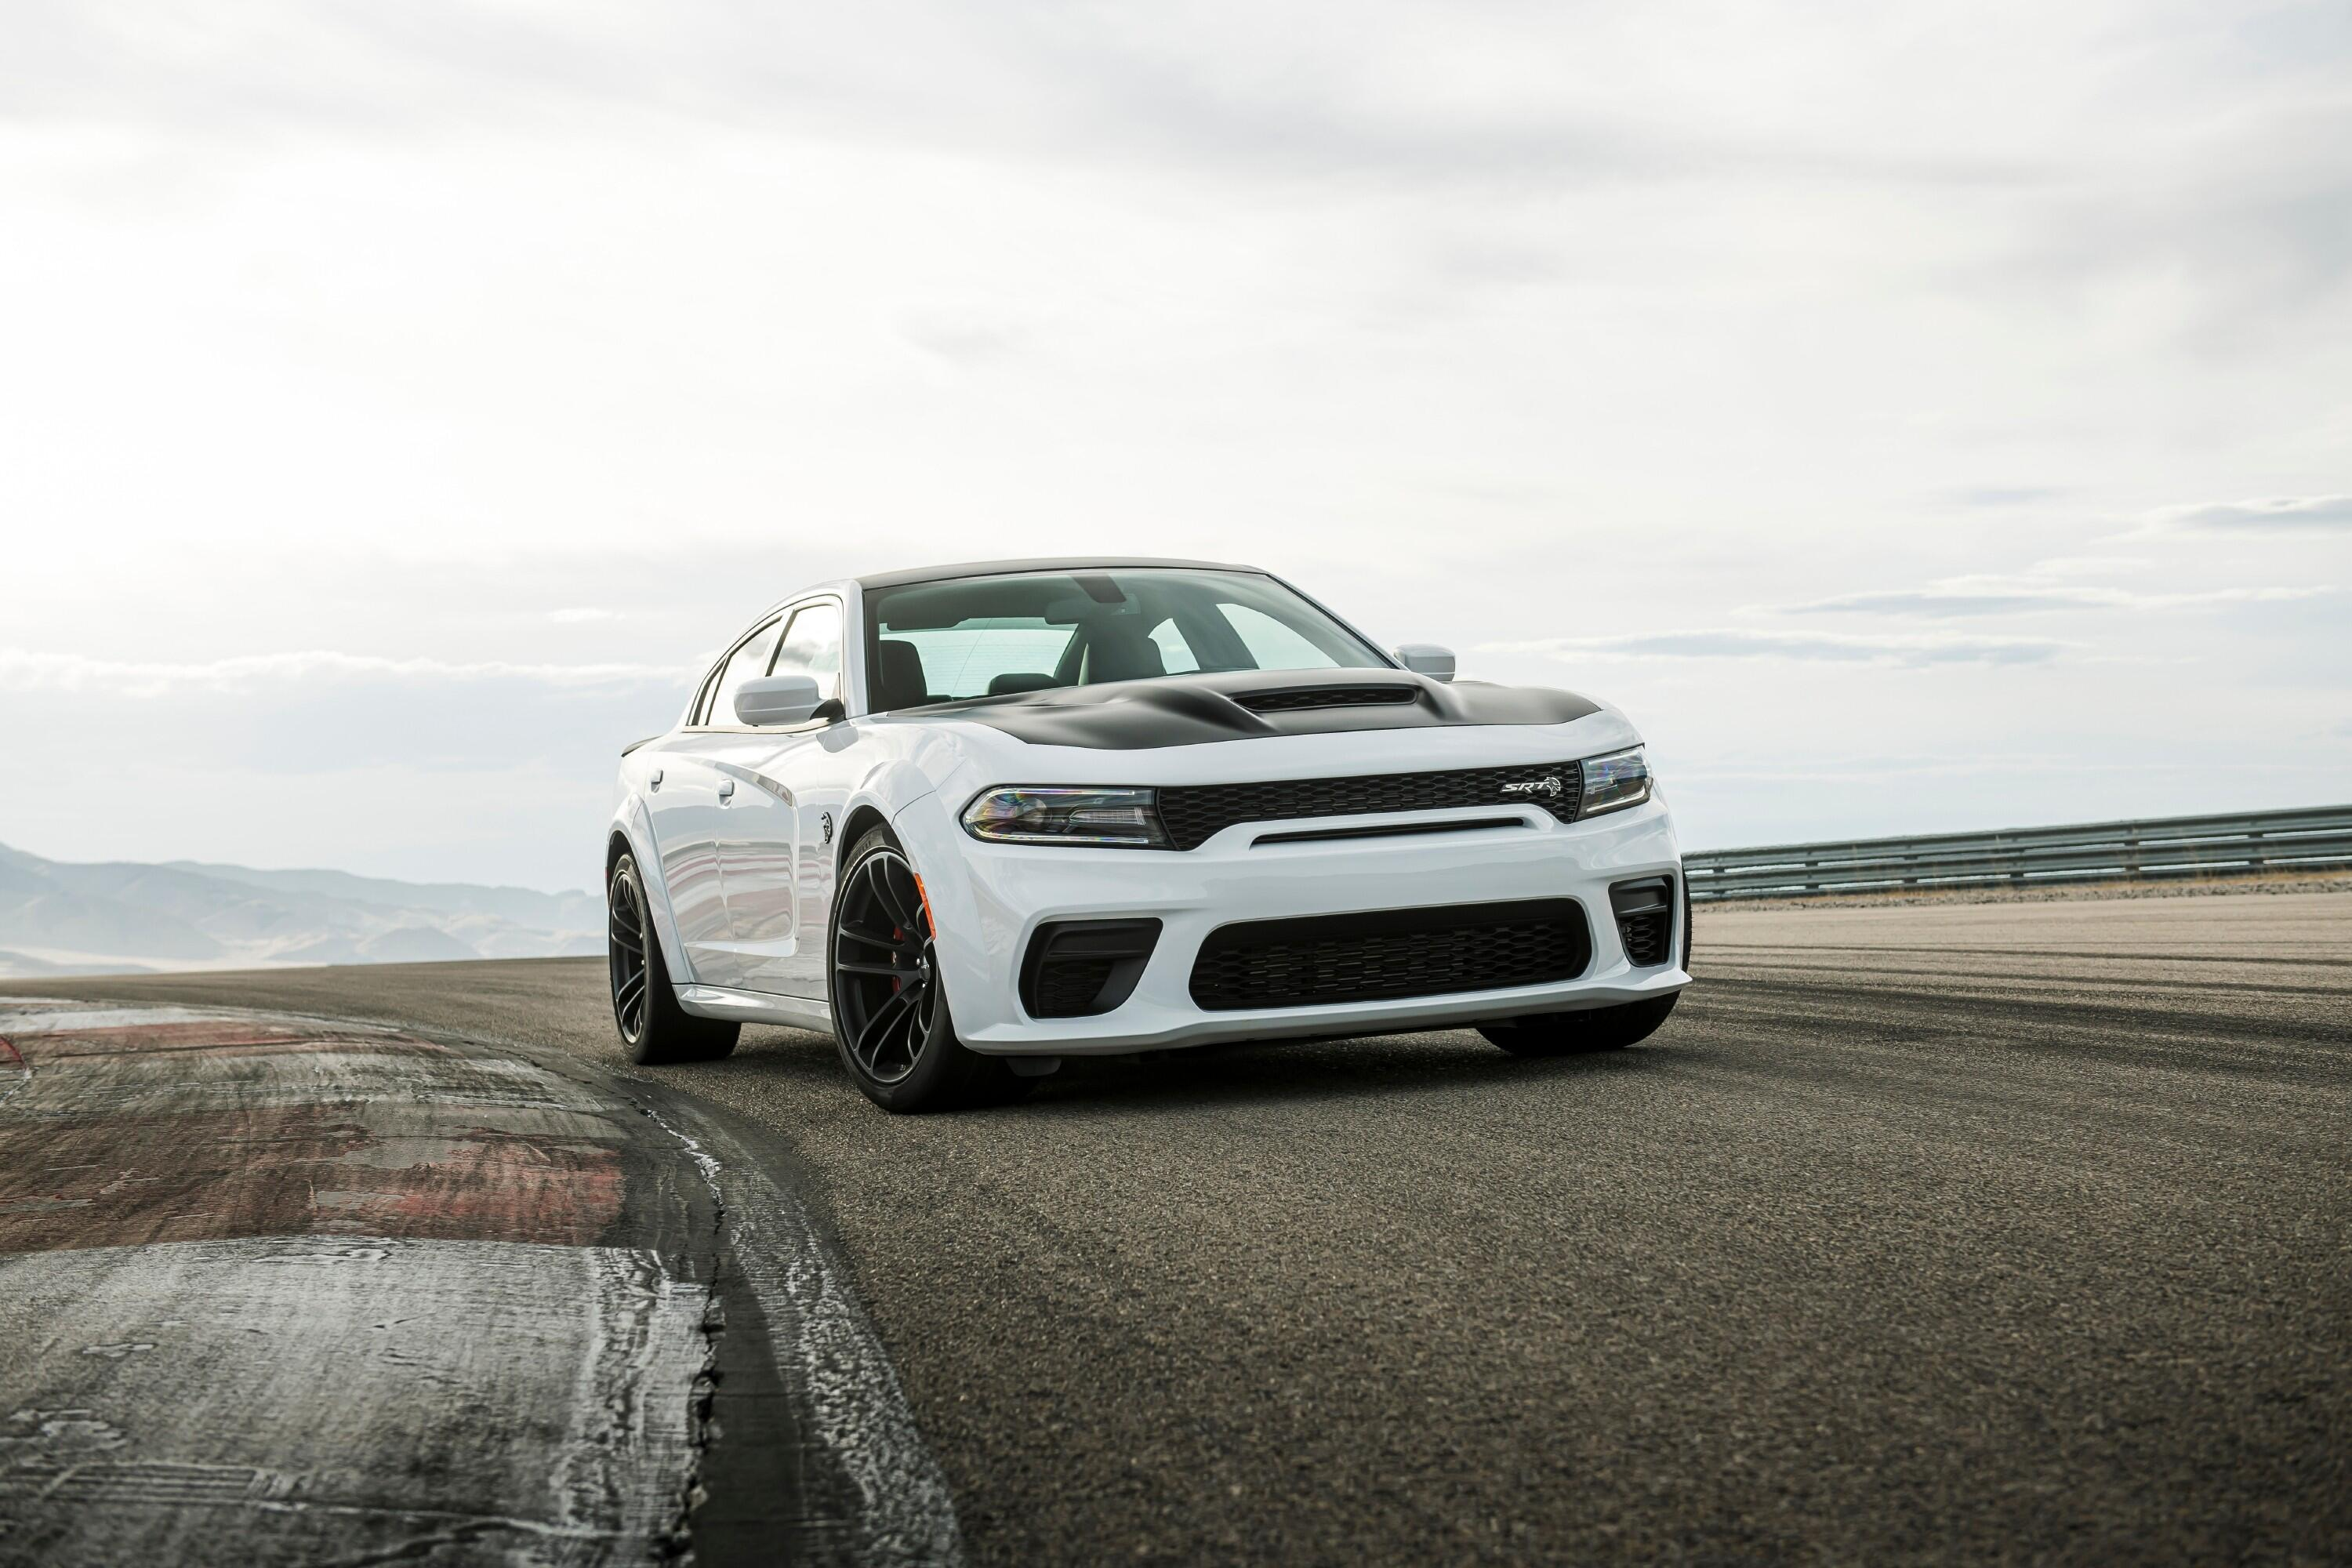 2021-dodge-charger-redeye-029